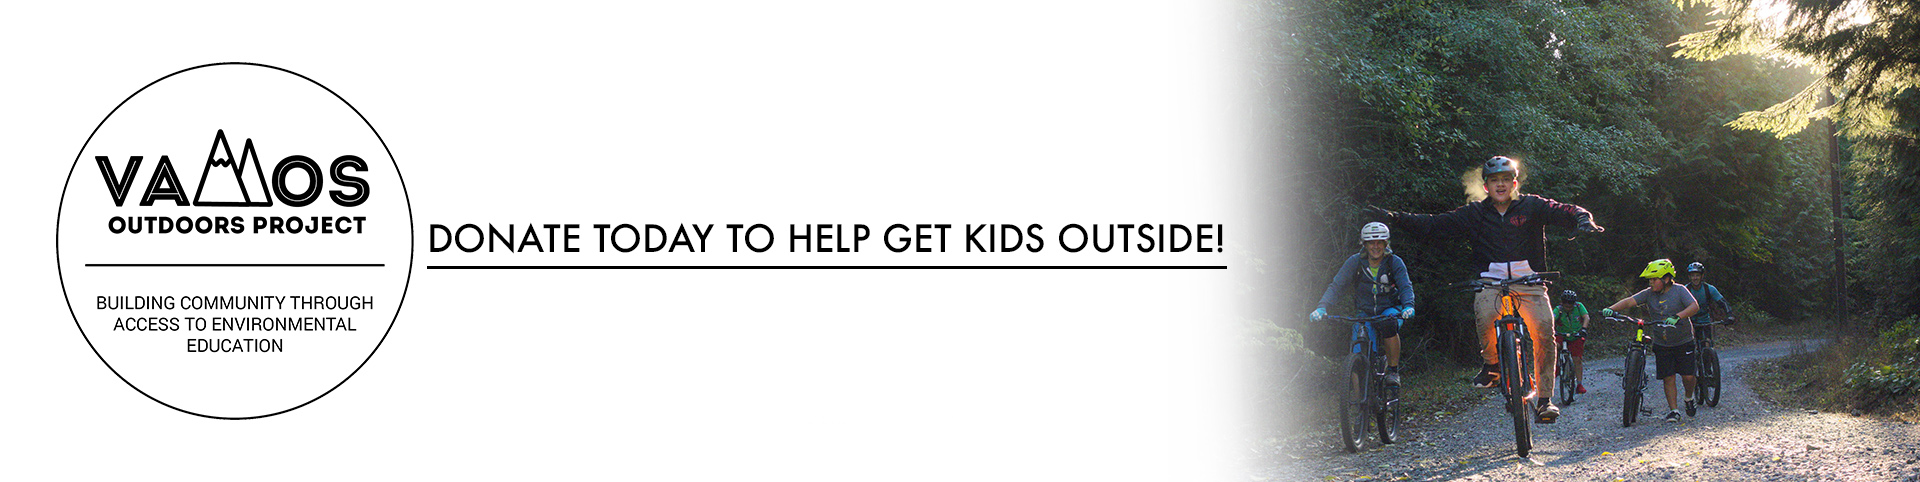 Donate to Vamos and Help Get Kids Outside